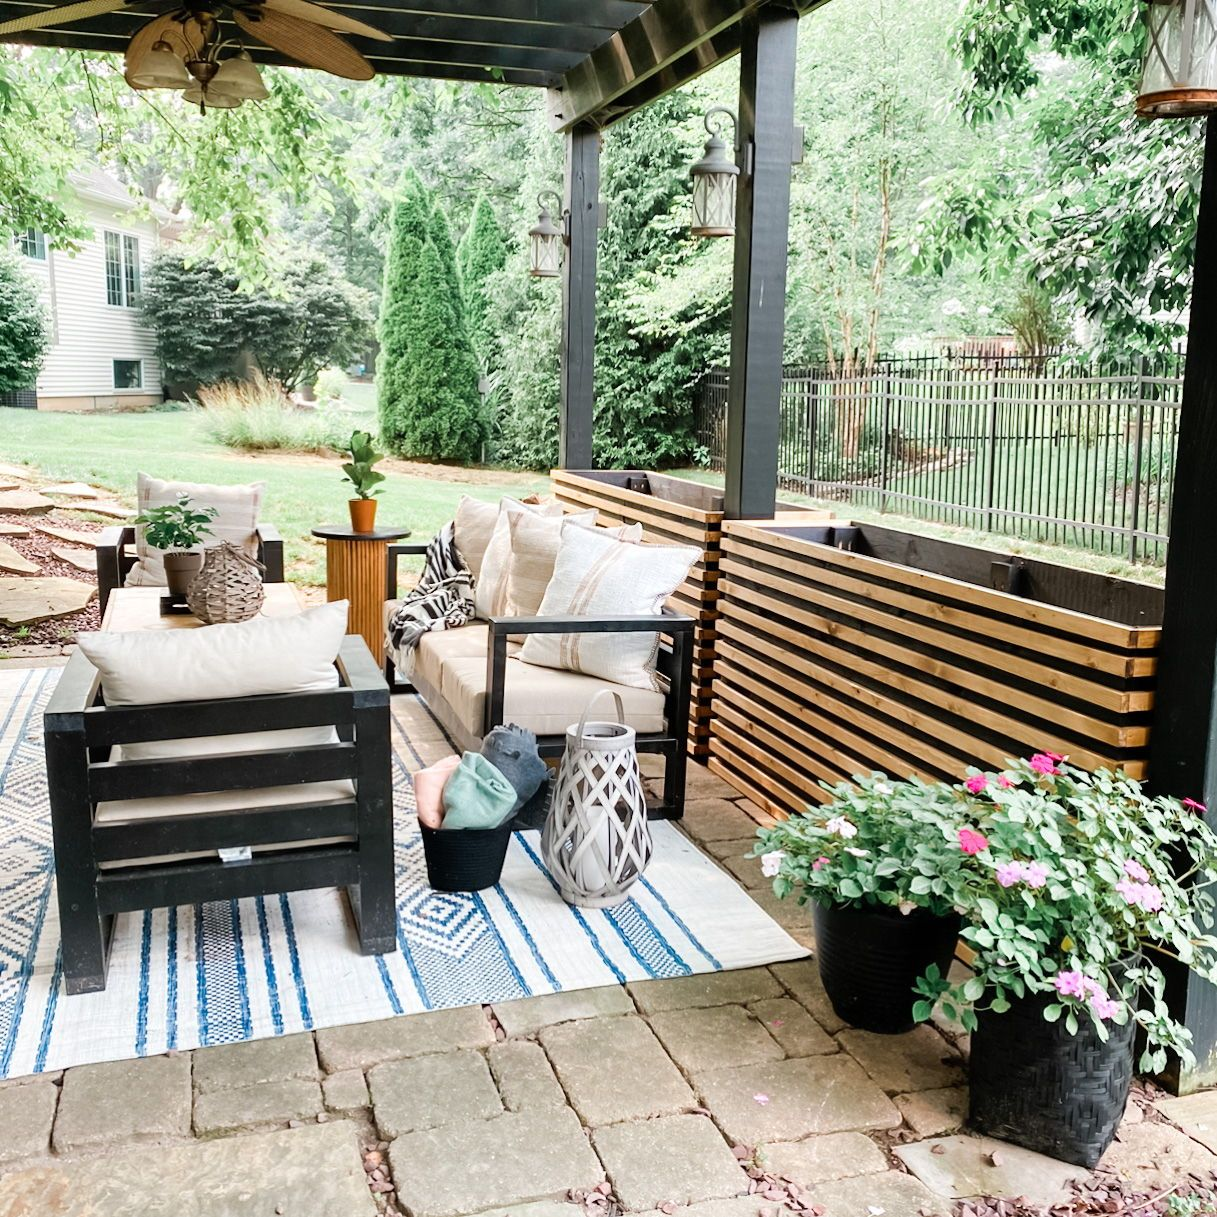 Pergola space with outdoor furniture and planters